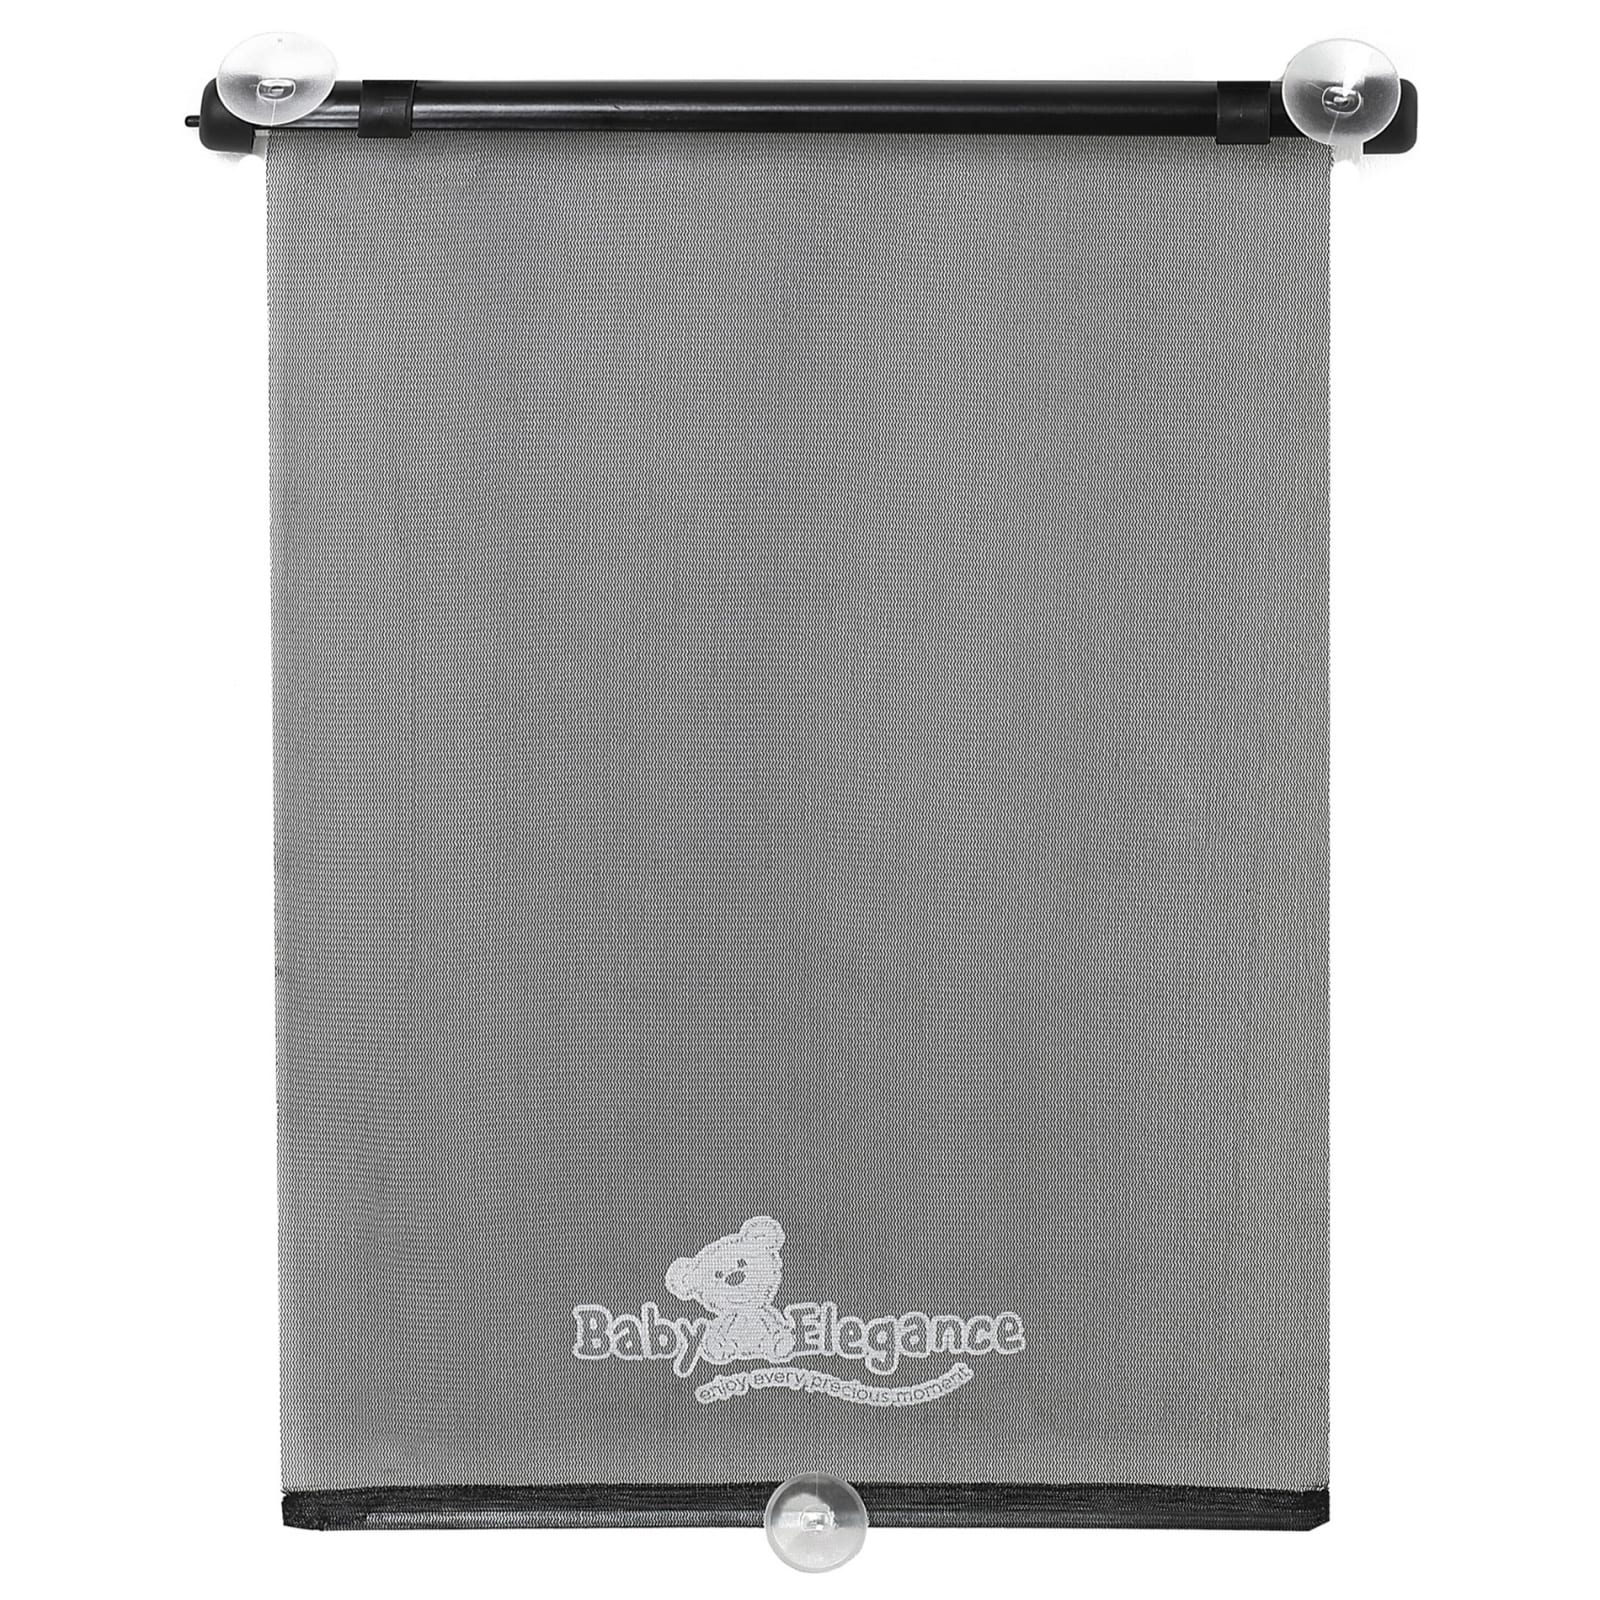 Auto Roller Sun Shade product image